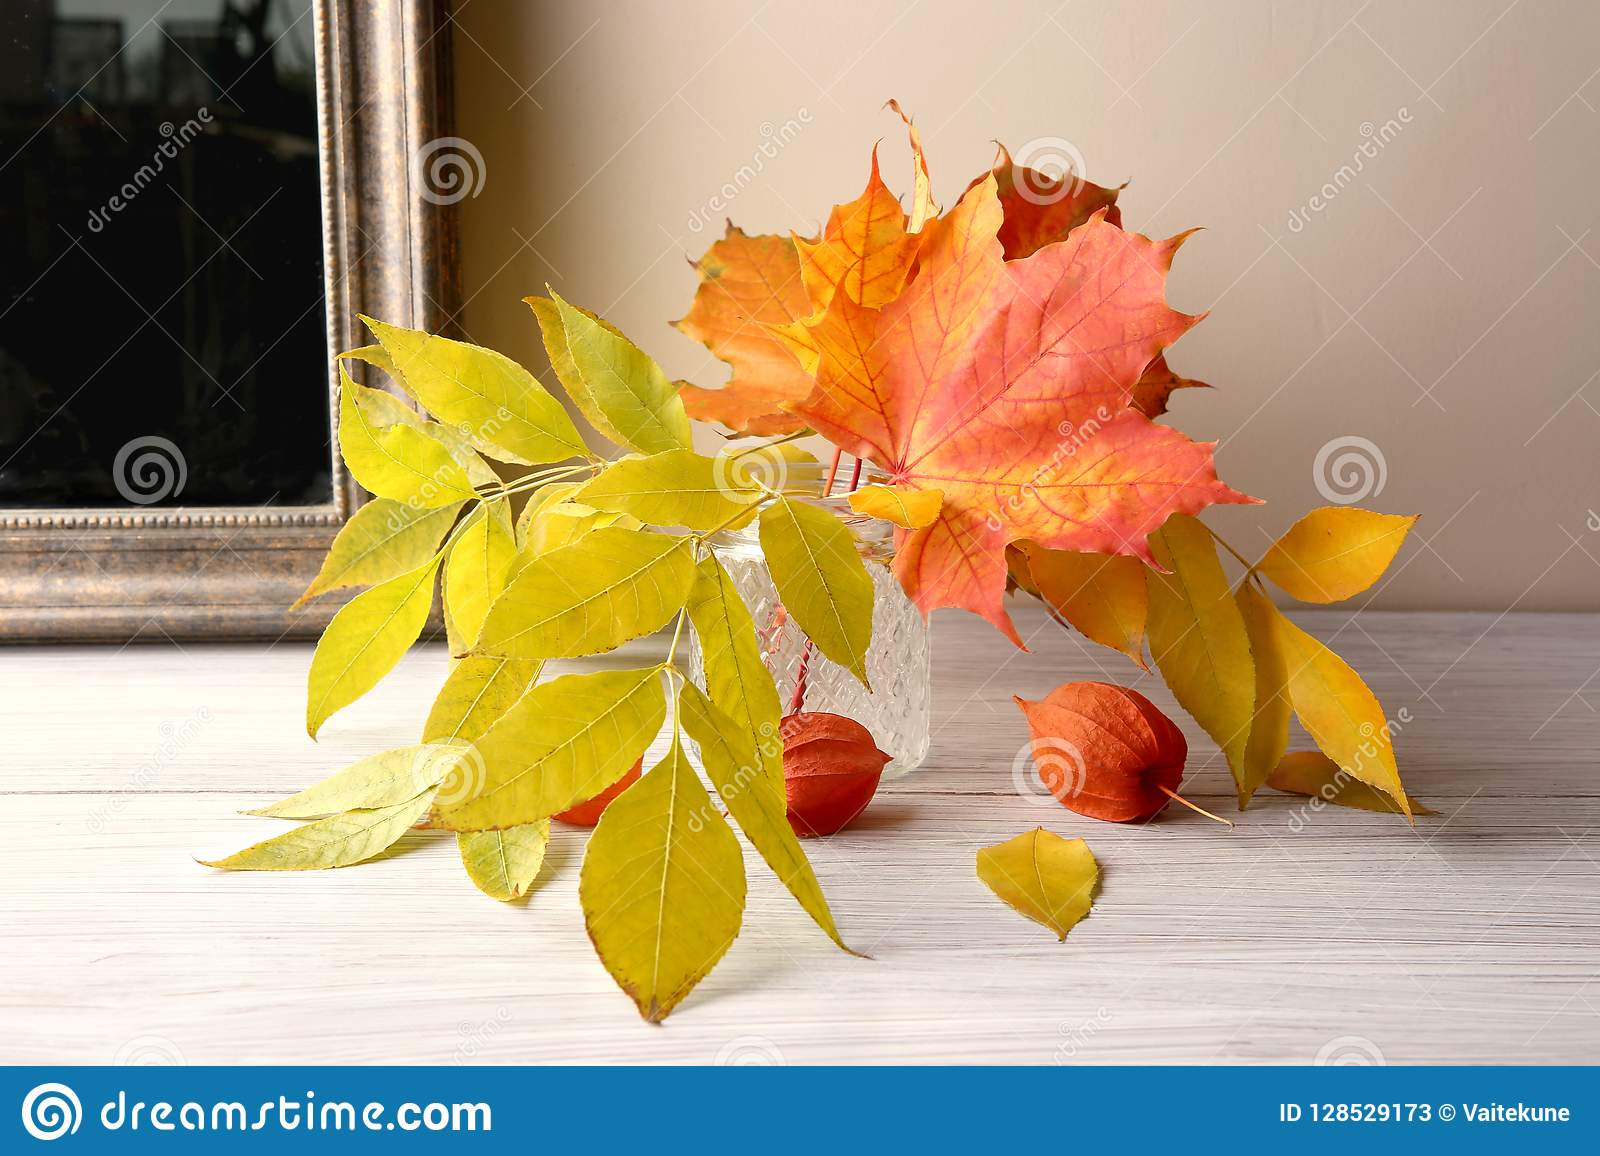 Maple And Ash Tree Leaves In Vase And Dried Plants Chinese Lantern on chinese flying lanterns, lace aloe plant, chinese sky lanterns, chinese red plant, flowering maple plant, bleeding heart plant, chinese rain tree, verbena plant, rhododendron plant, baloon flower plant, climbing nightshade plant, chinese tomato plant, chinese paper lanterns, chinese money plant, bittersweet plant, foxglove plant, abutilon plant, bird of paradise plant, lupine plant, snapdragon plant,